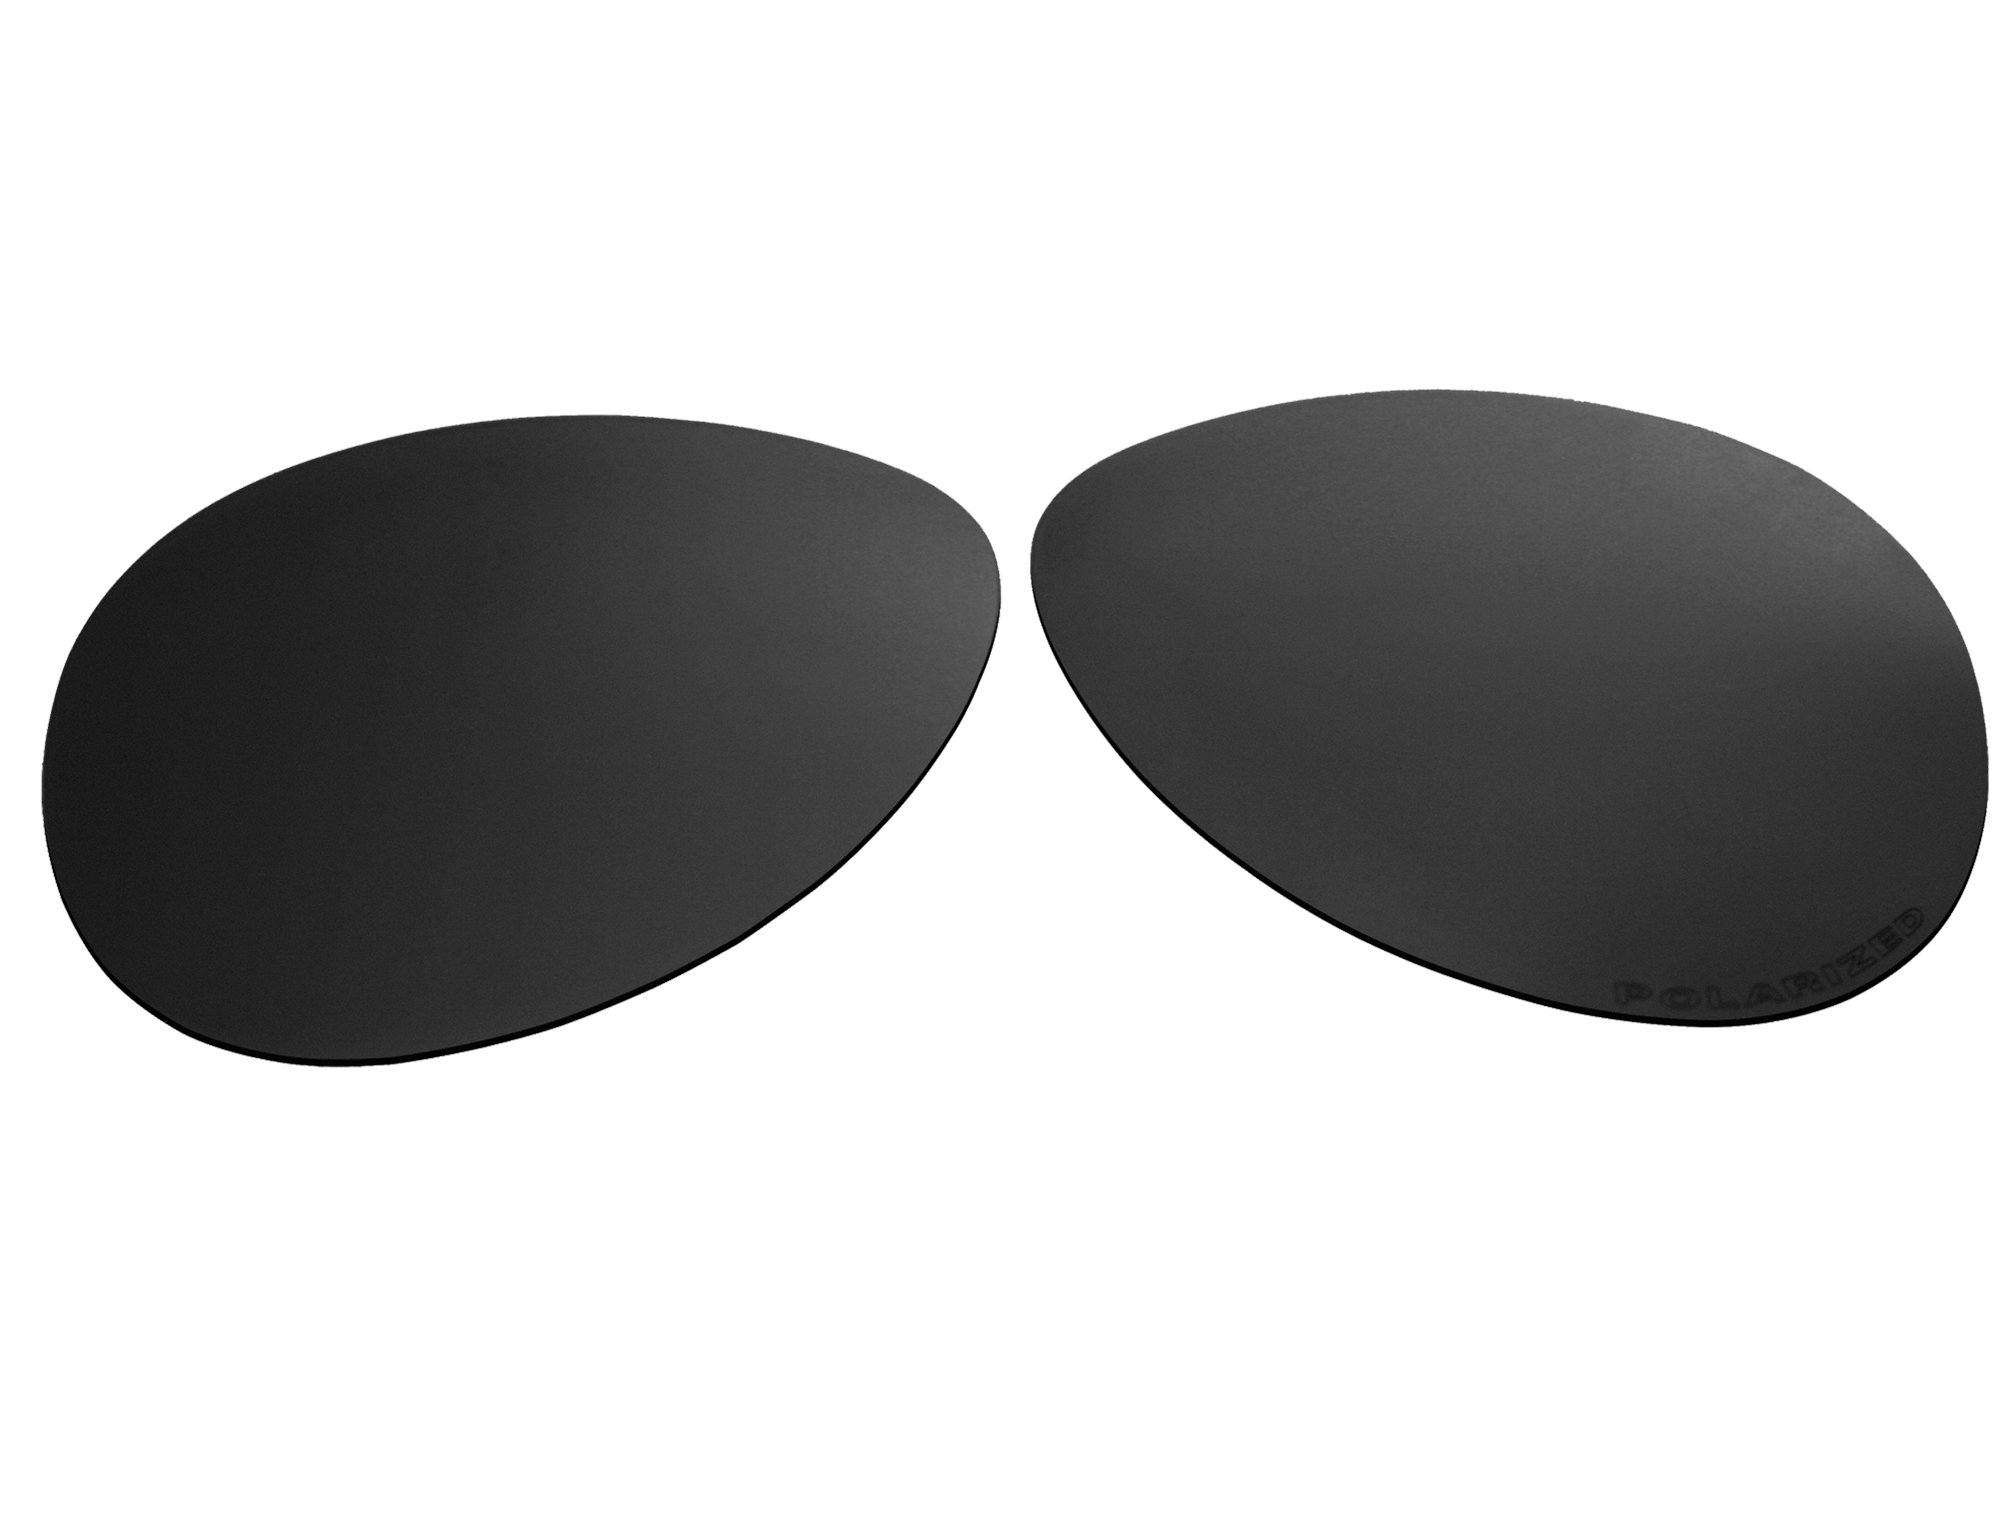 Polarized Replacement Sunglasses Lenses for Oakley Caveat Aviator with Excellent UV Protection for Women(Black)